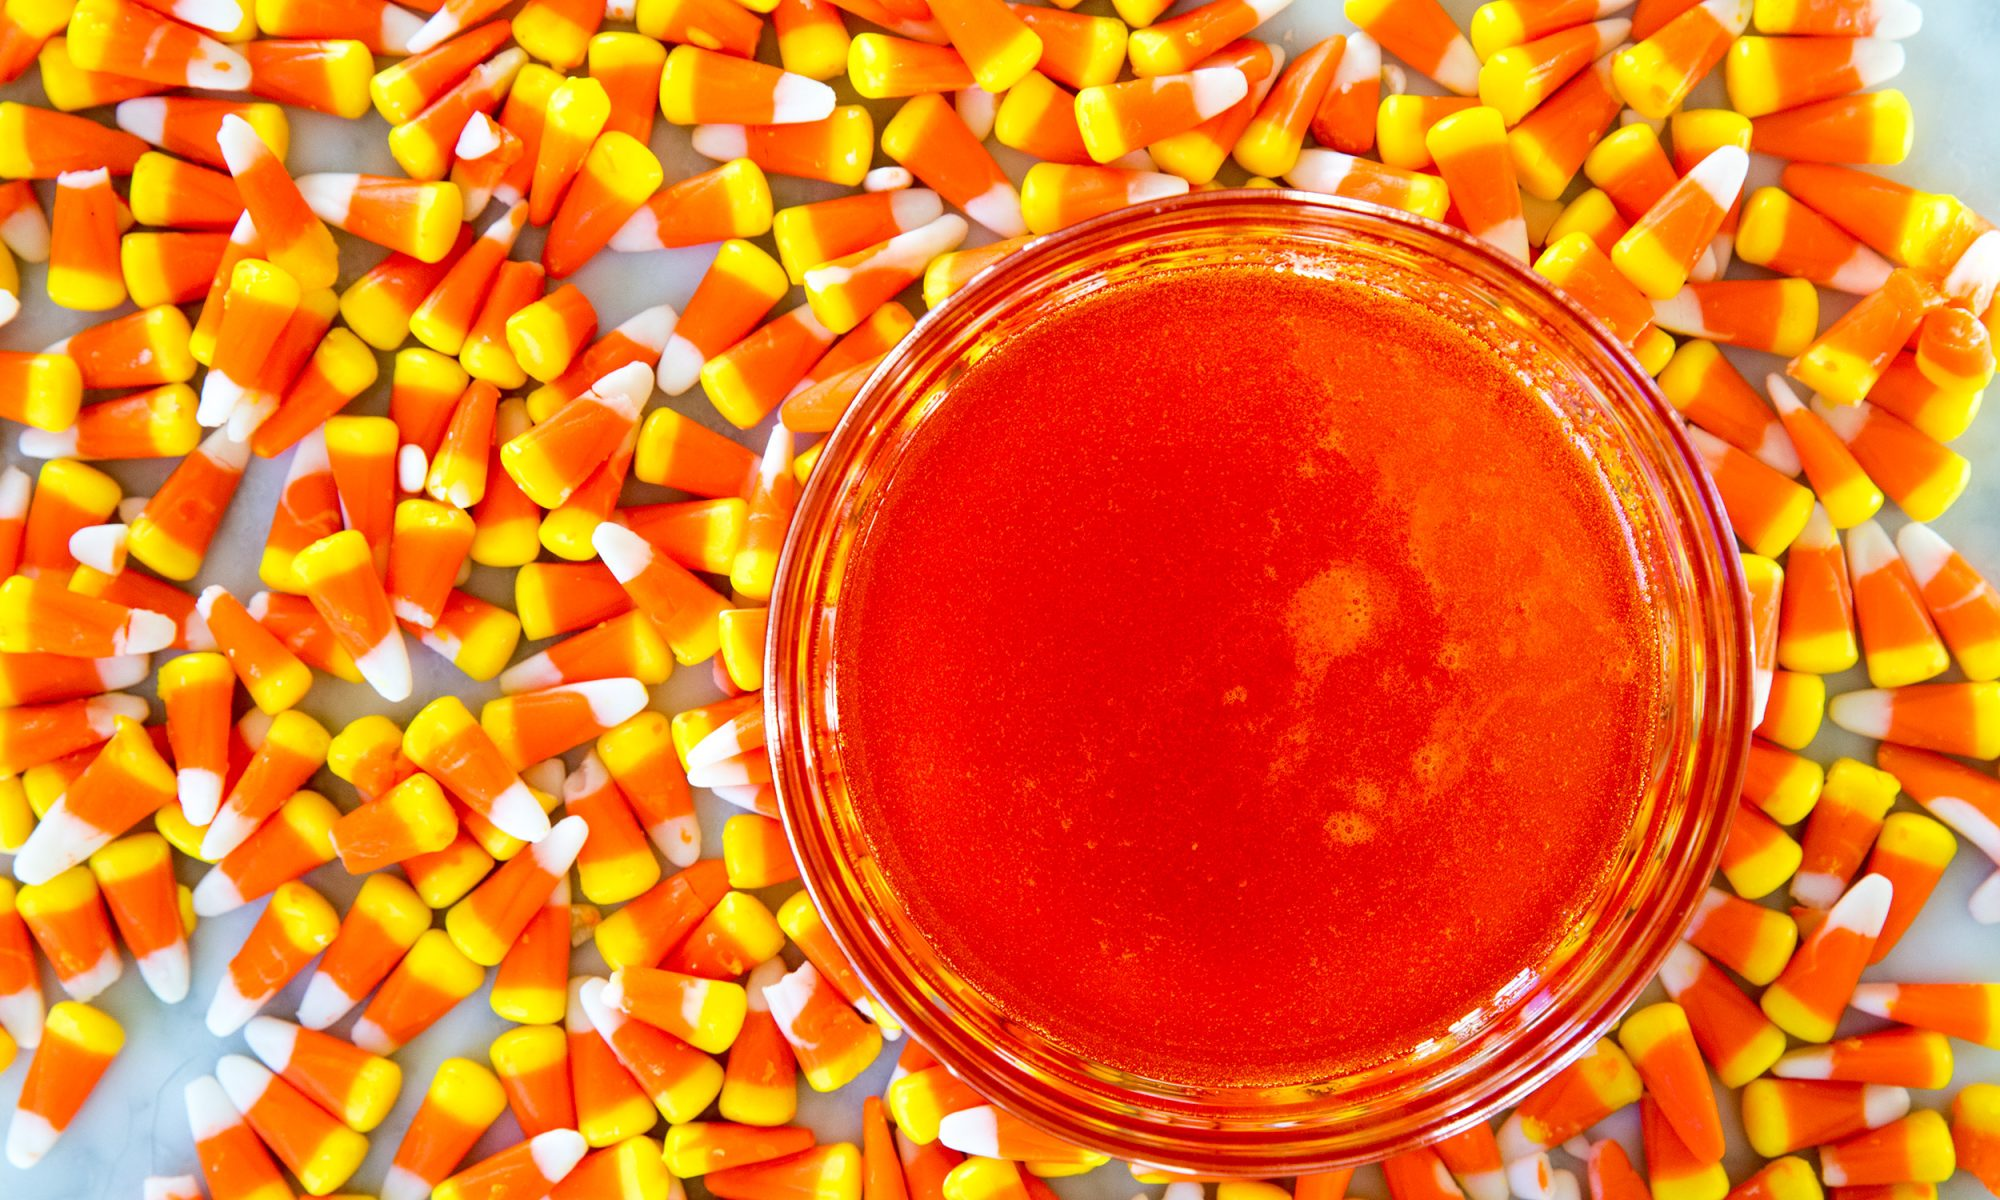 How to Melt Candy Corn into a Simple Syrup